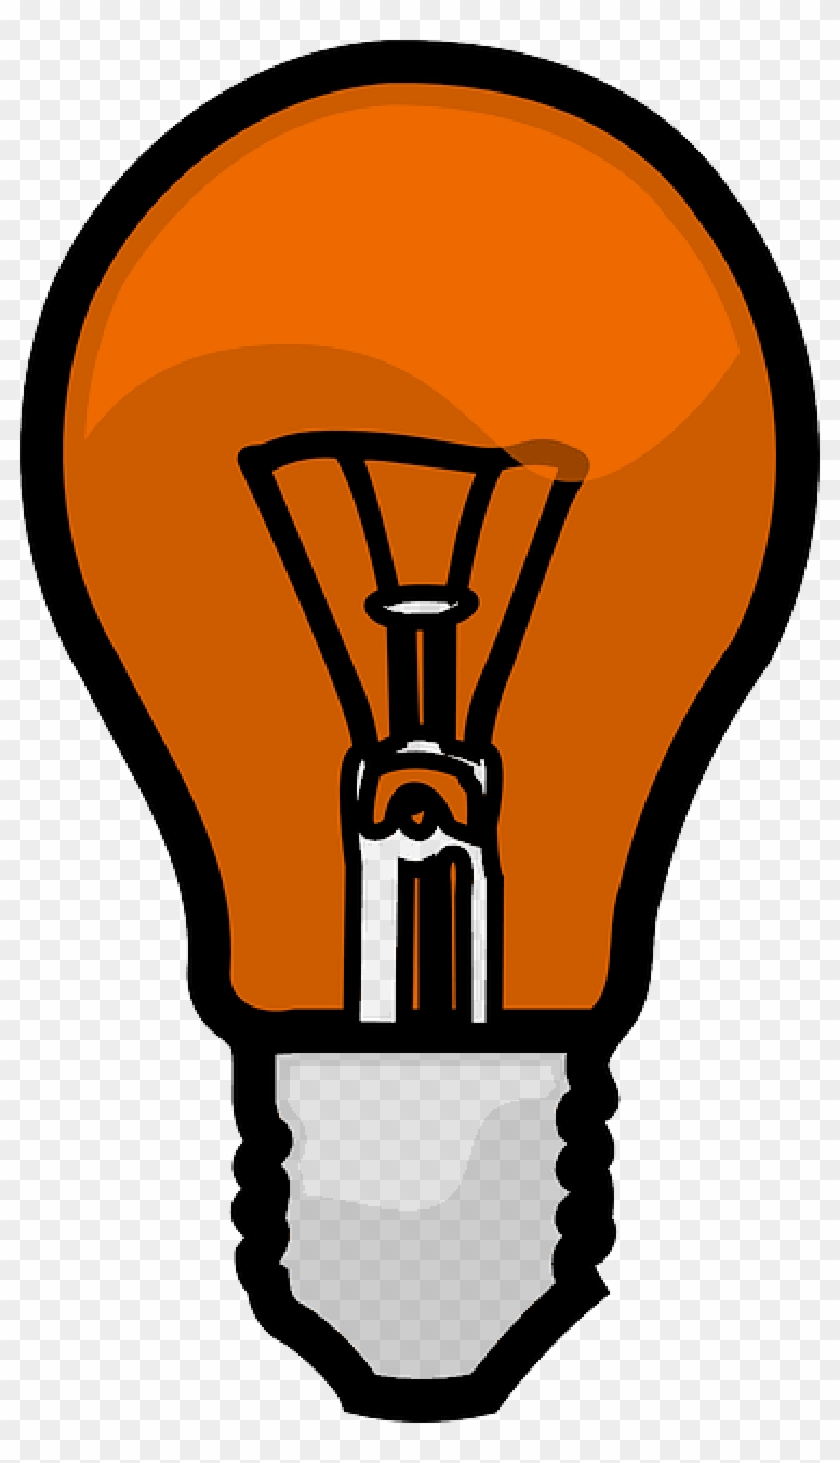 Royalty Free Police Violence Clip Art, Vector Images - Incandescent Light Bulb #927789